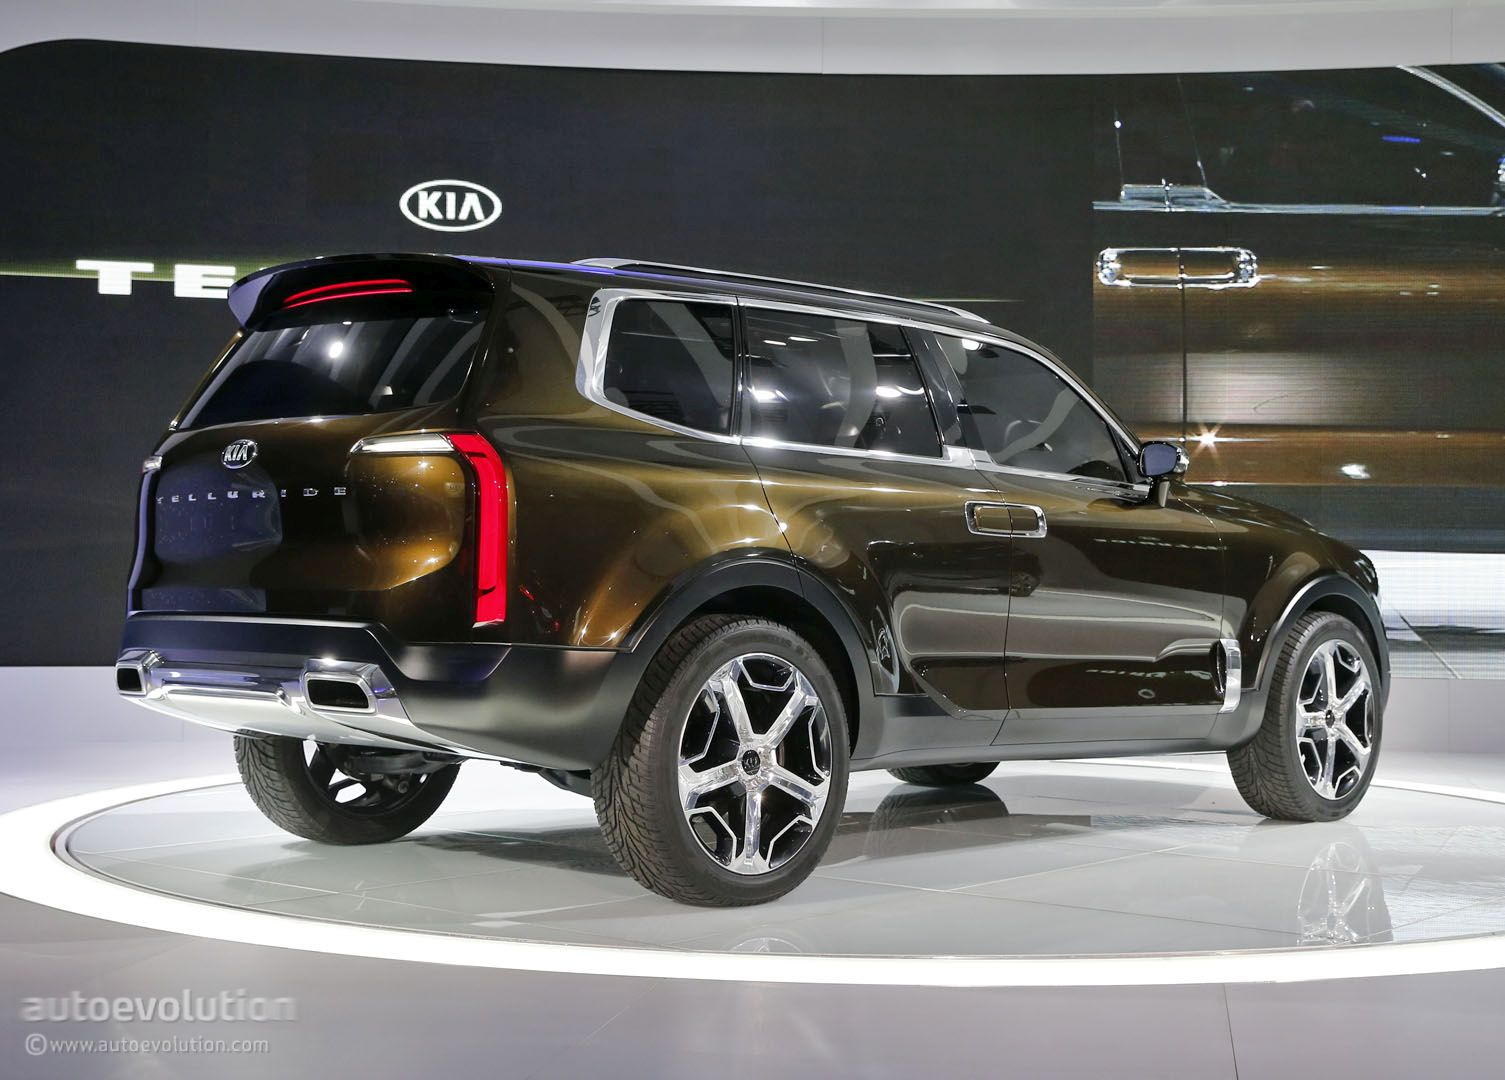 2018 kia hybrid suv new car release date and review 2018 mygirlfriendscloset. Black Bedroom Furniture Sets. Home Design Ideas